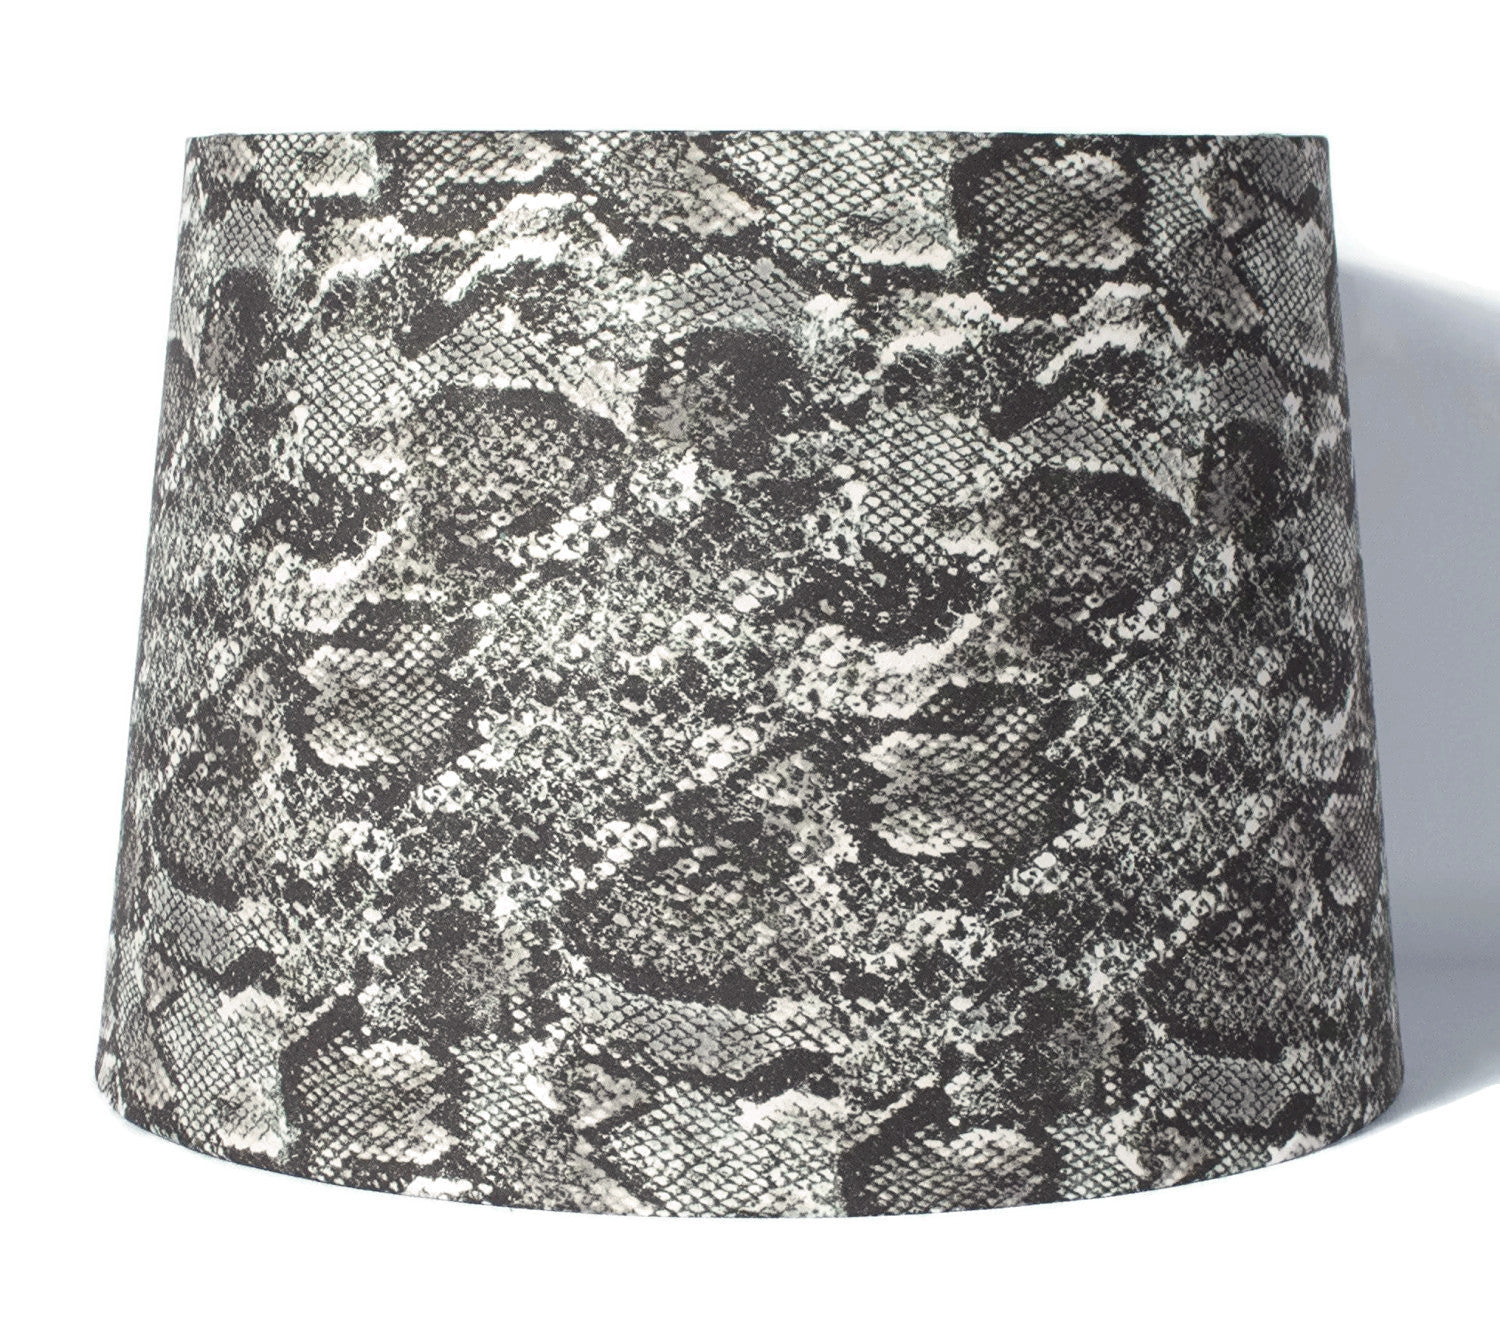 Snakeskin Fabric Drum Lampshade, Spider Fitter